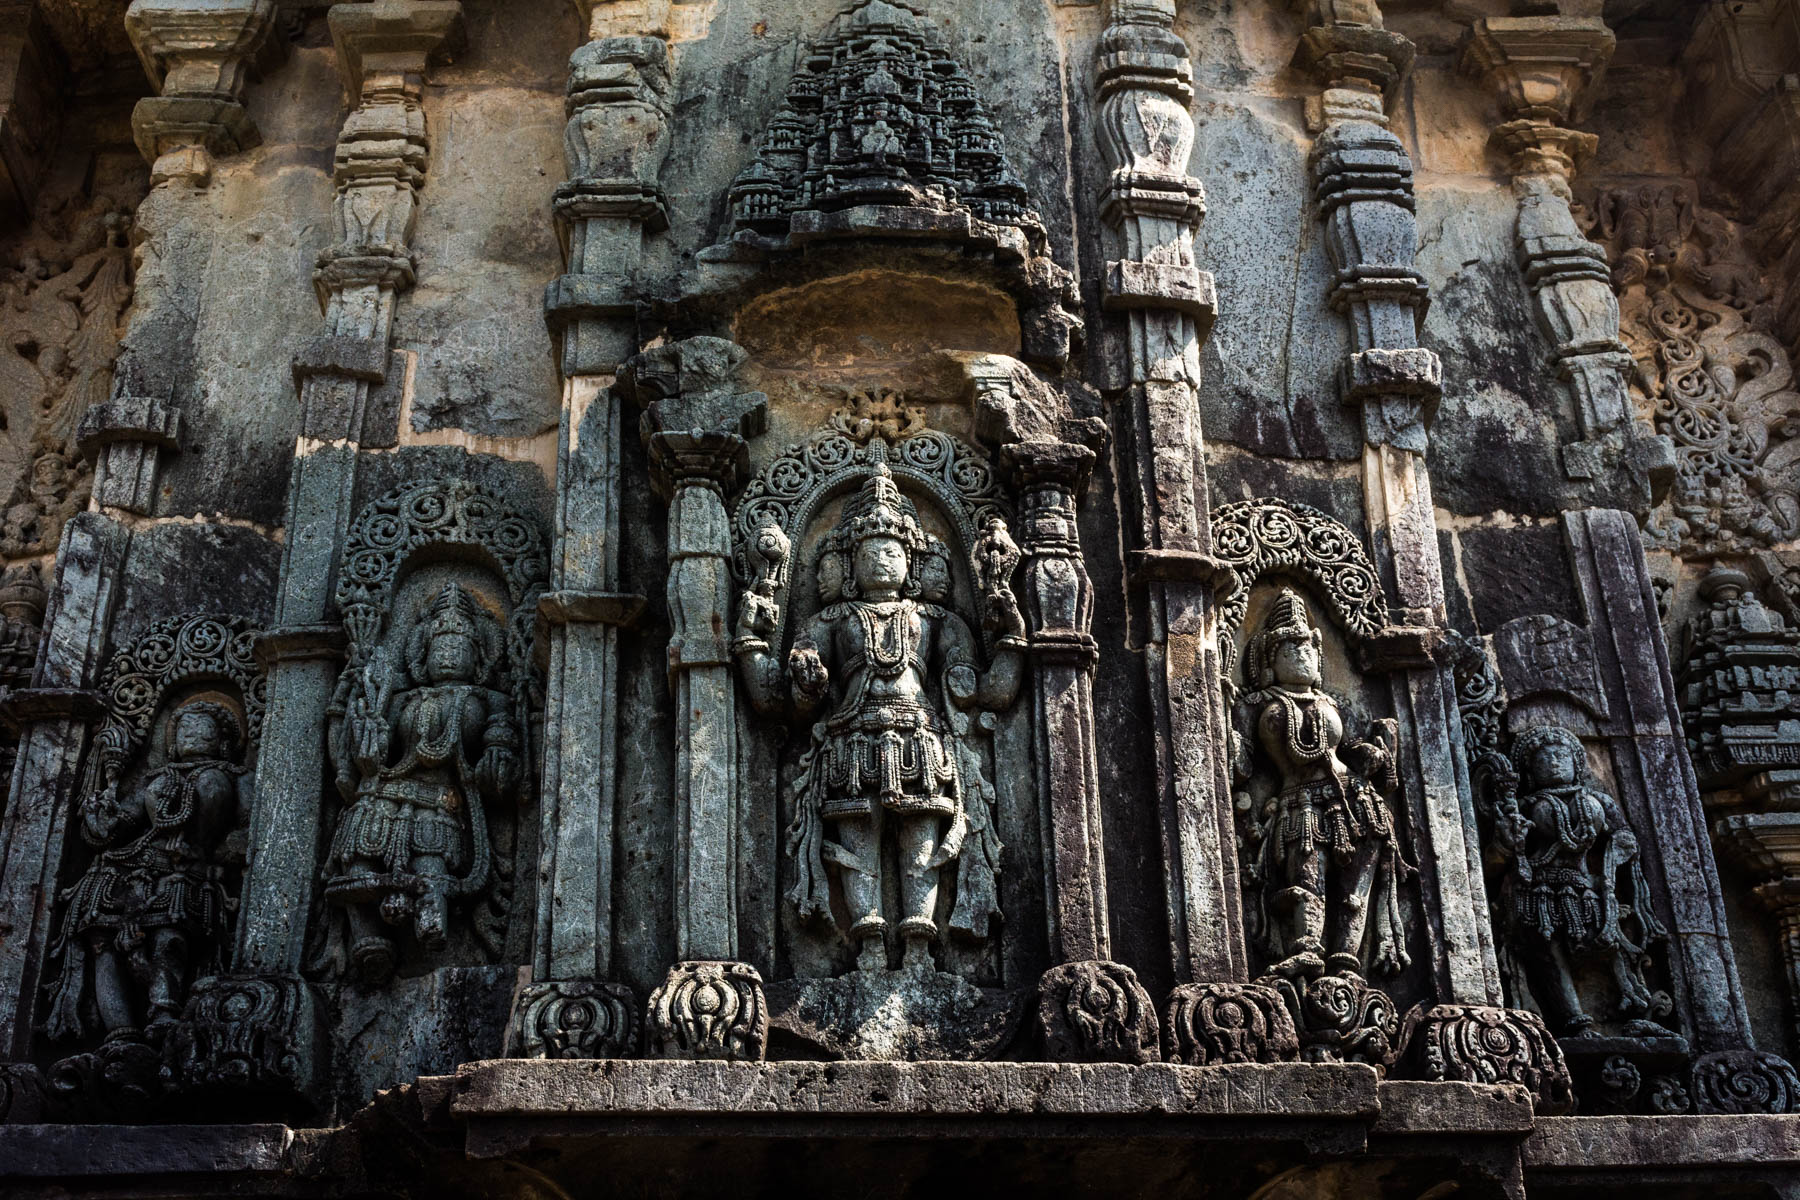 Off the beaten track places to visit in Karnataka, India - Detailed stone carvings on the Chennakesava temple - Lost With Purpose